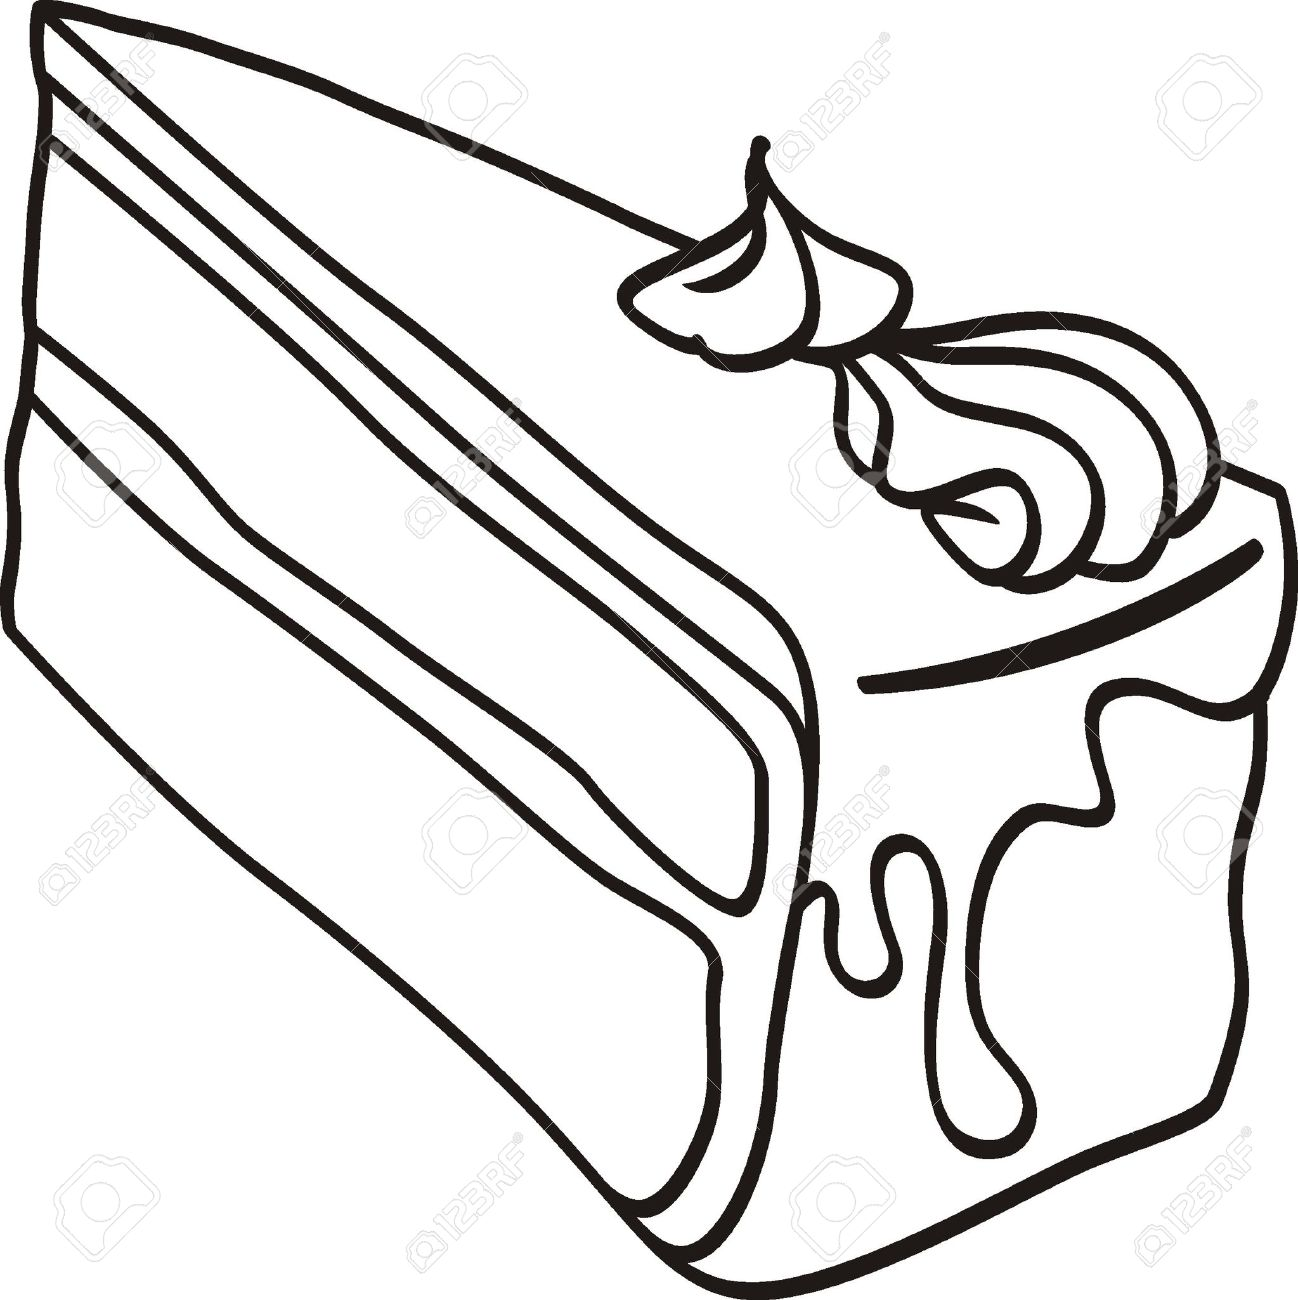 Slice of cake clipart black and white 5 » Clipart Station.